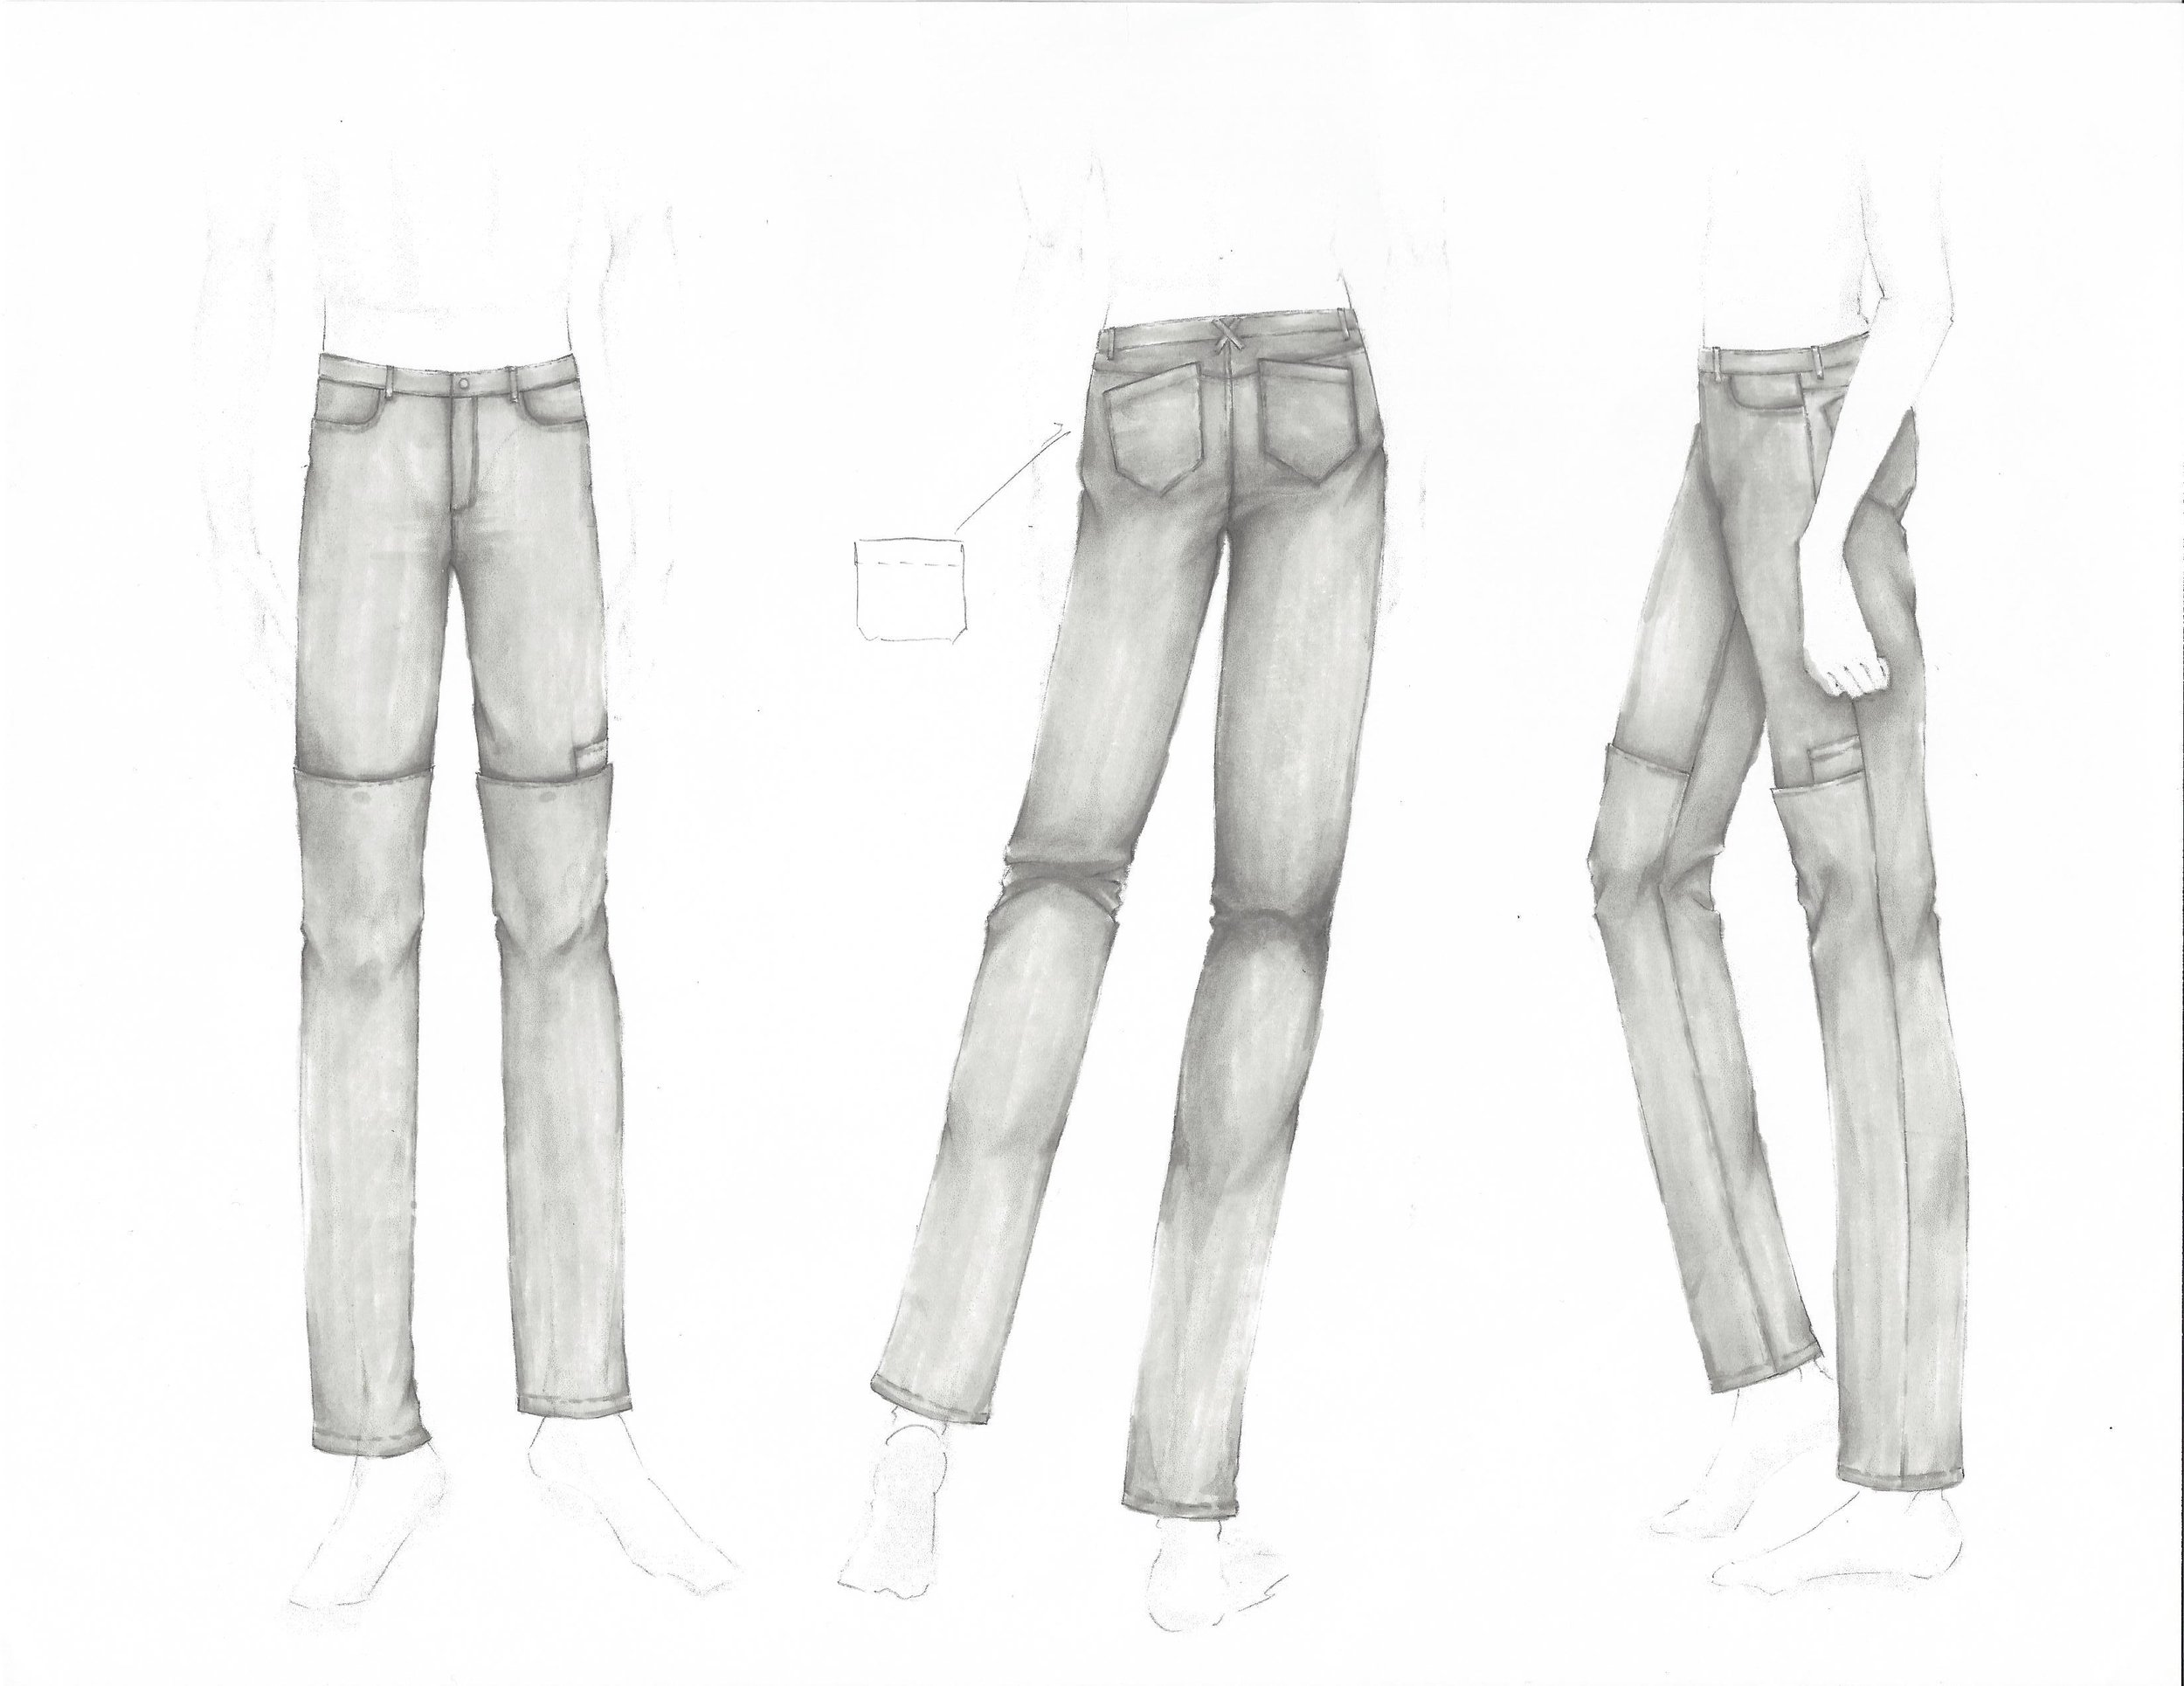 Khoman Room_Col. 003 Floating World_Wow Khoman_Sketch_Straight Leg Denim Jeans